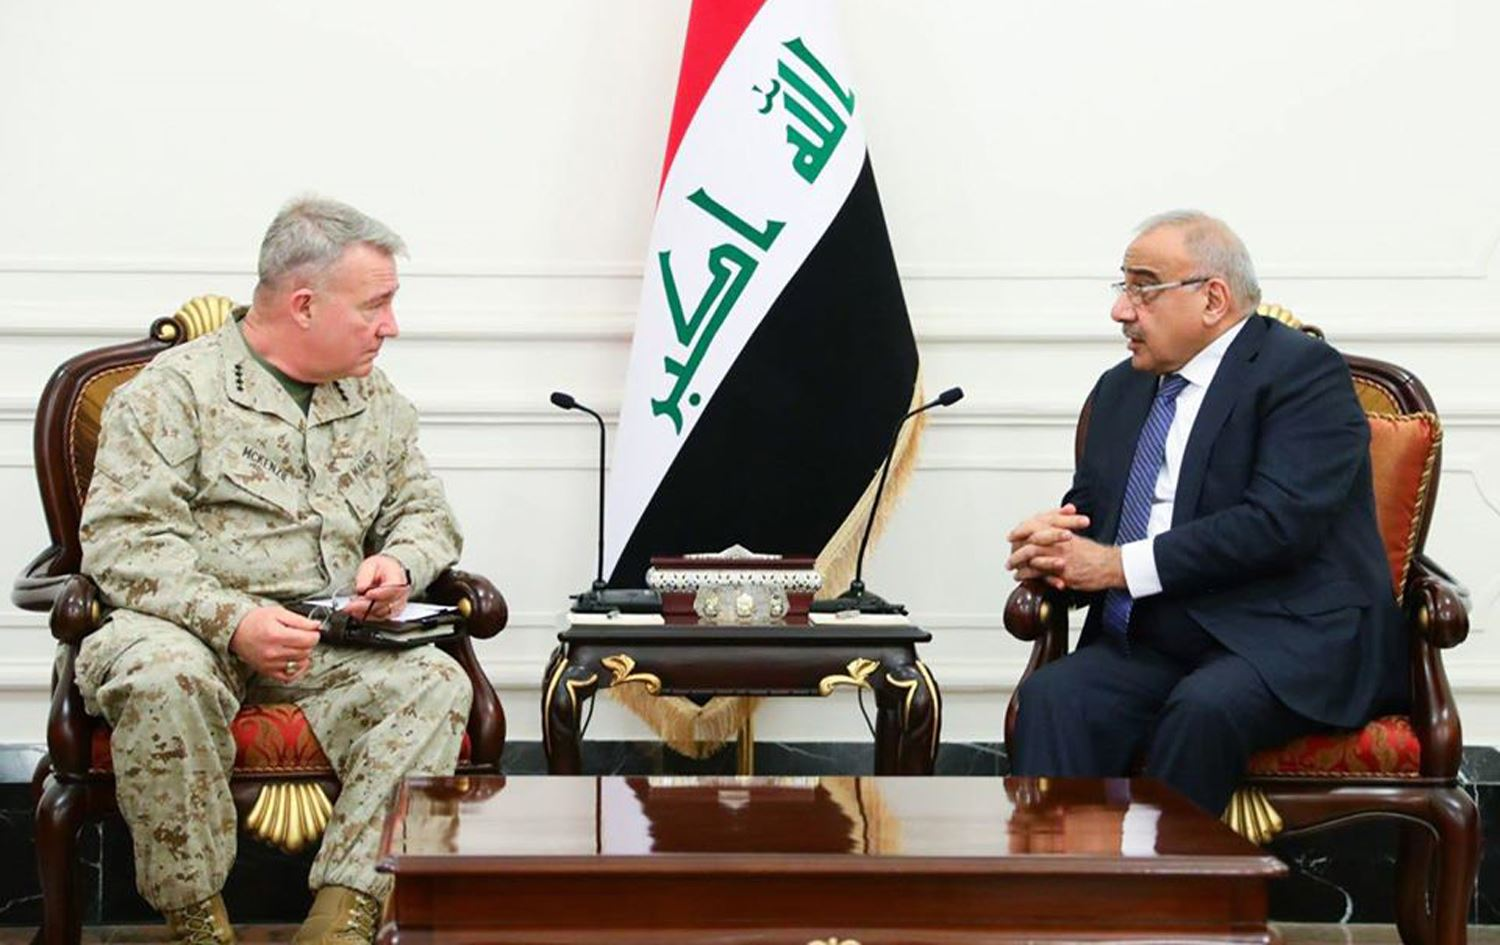 US CENTCOM Commander Visited Iraq In Attempt to Mend Relations